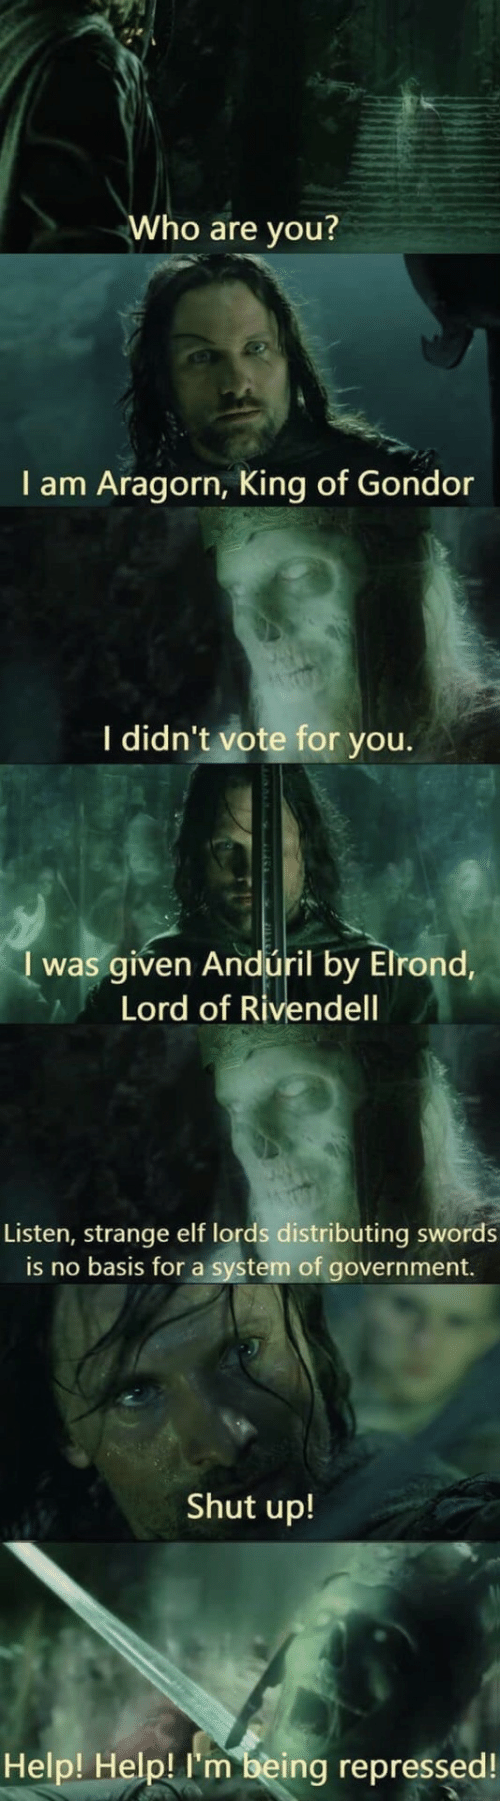 Elf, Shut Up, and Help: Who are you?  I am Aragorn, King of Gondor  I didn't vote for you.  I was given Andúril by Elrond,  Lord of Rivendell  Listen, strange elf lords distributing swords  is no basis for a system of government.  Shut up!  Help! Help! I'm being repressed!